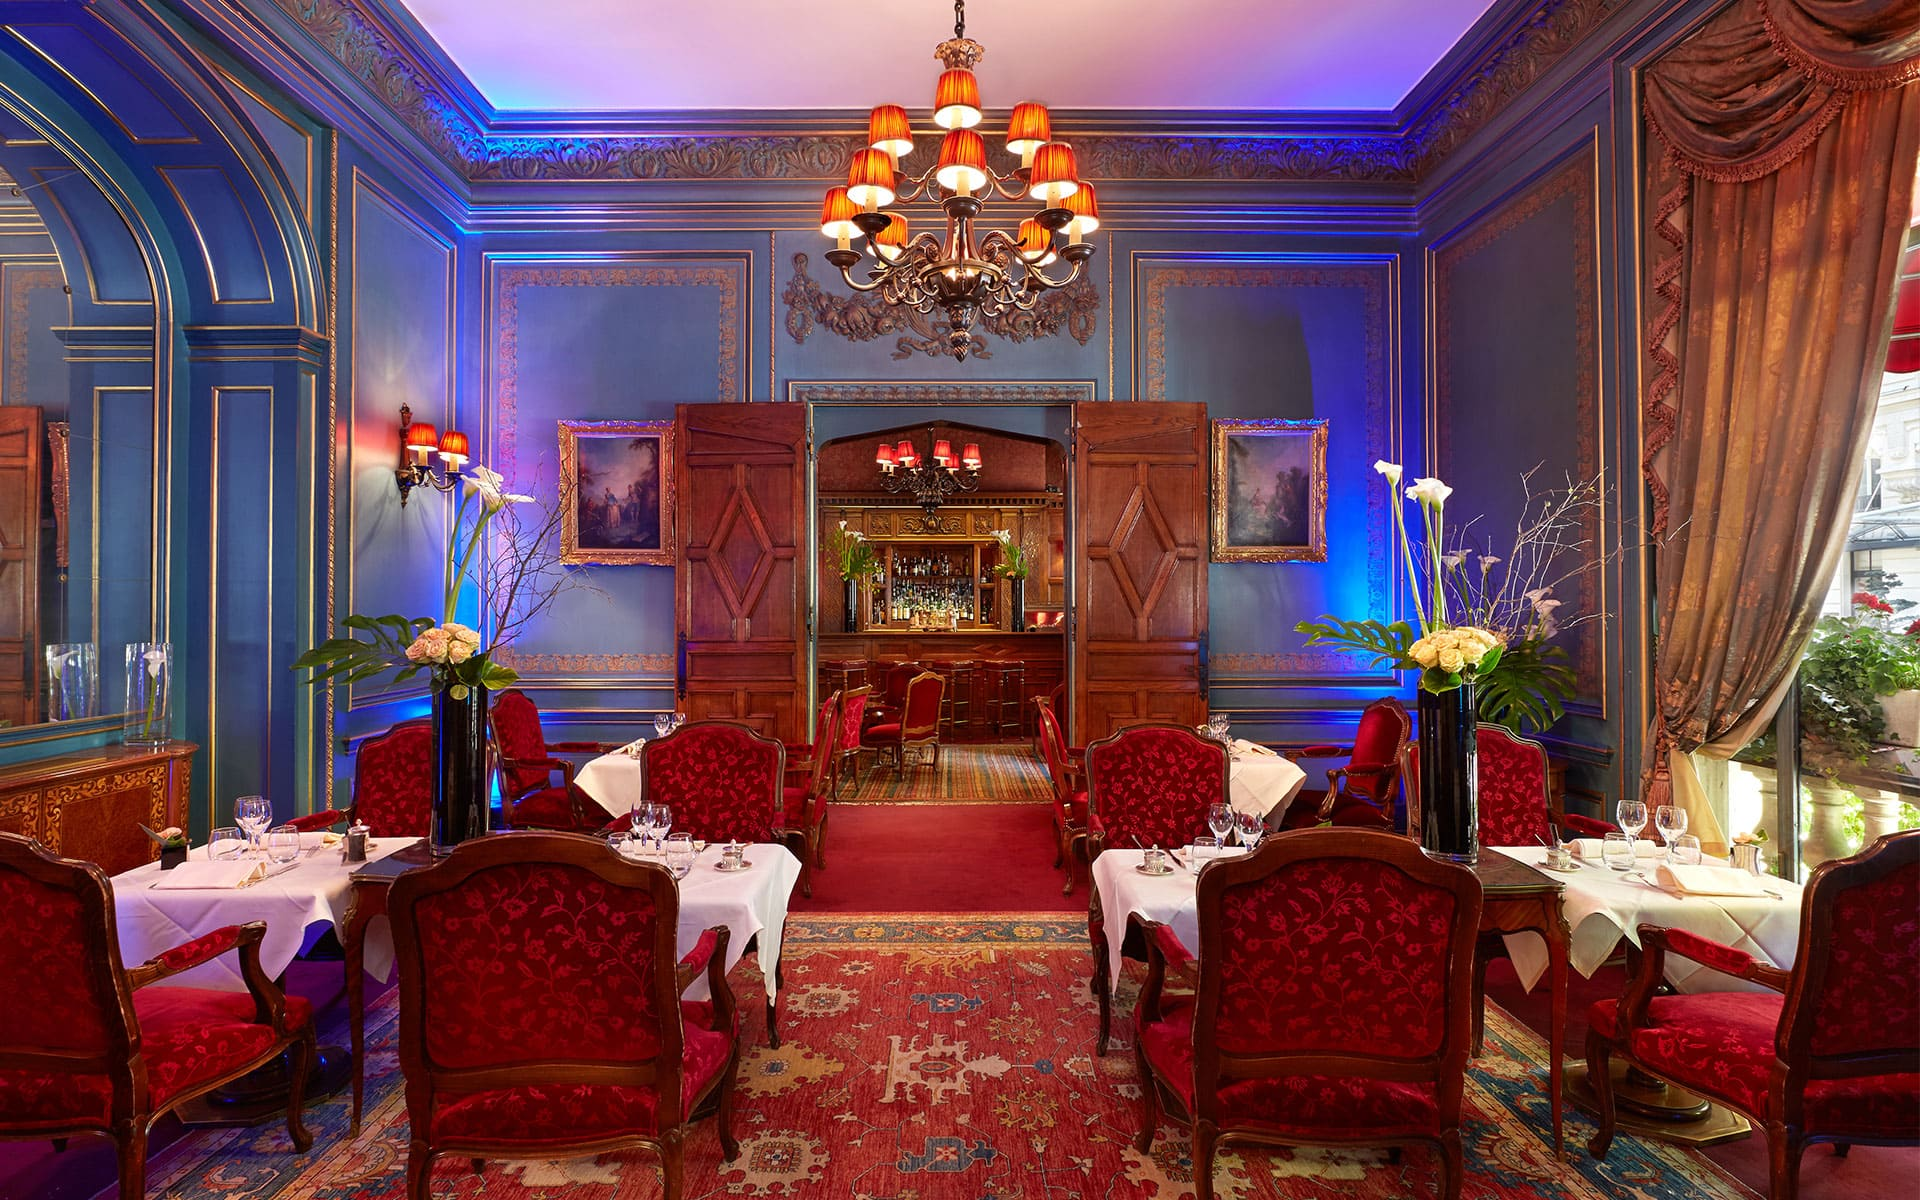 266/10-restaurant-bar/Blue-Lounge-1 - -CHotel-Raphael-Paris.jpg